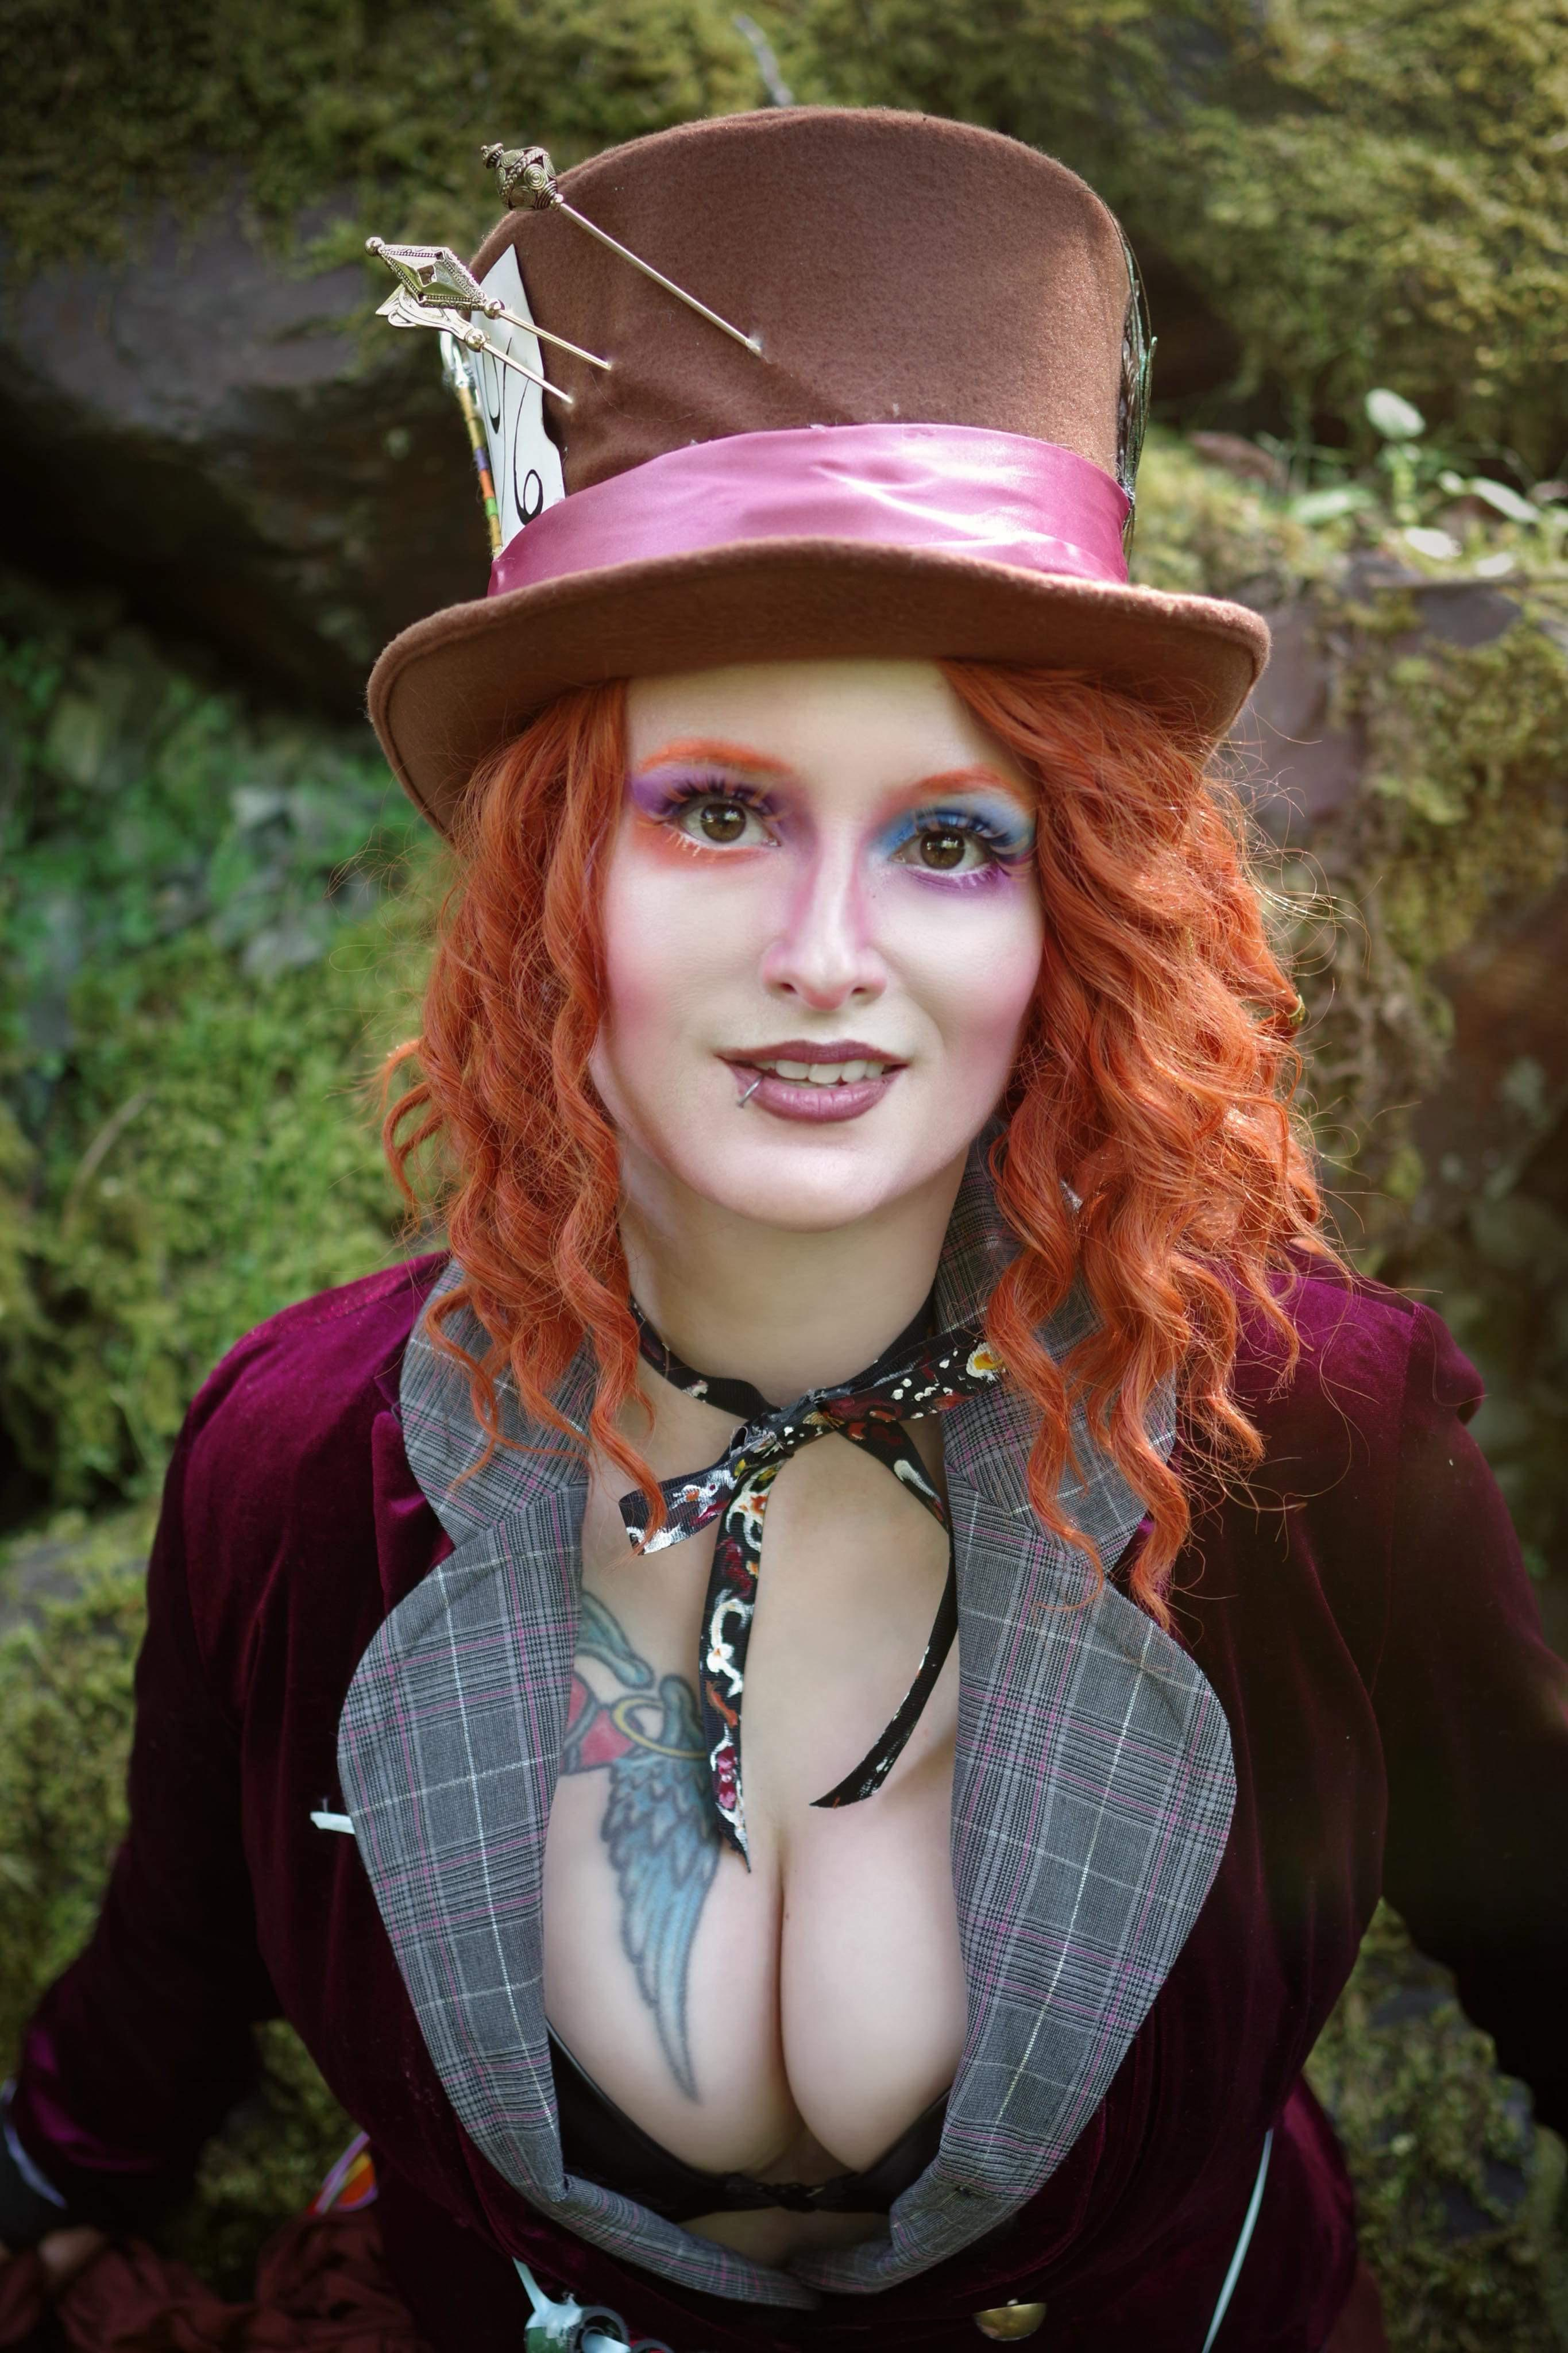 The Mad Hatter By Captive Cosplay